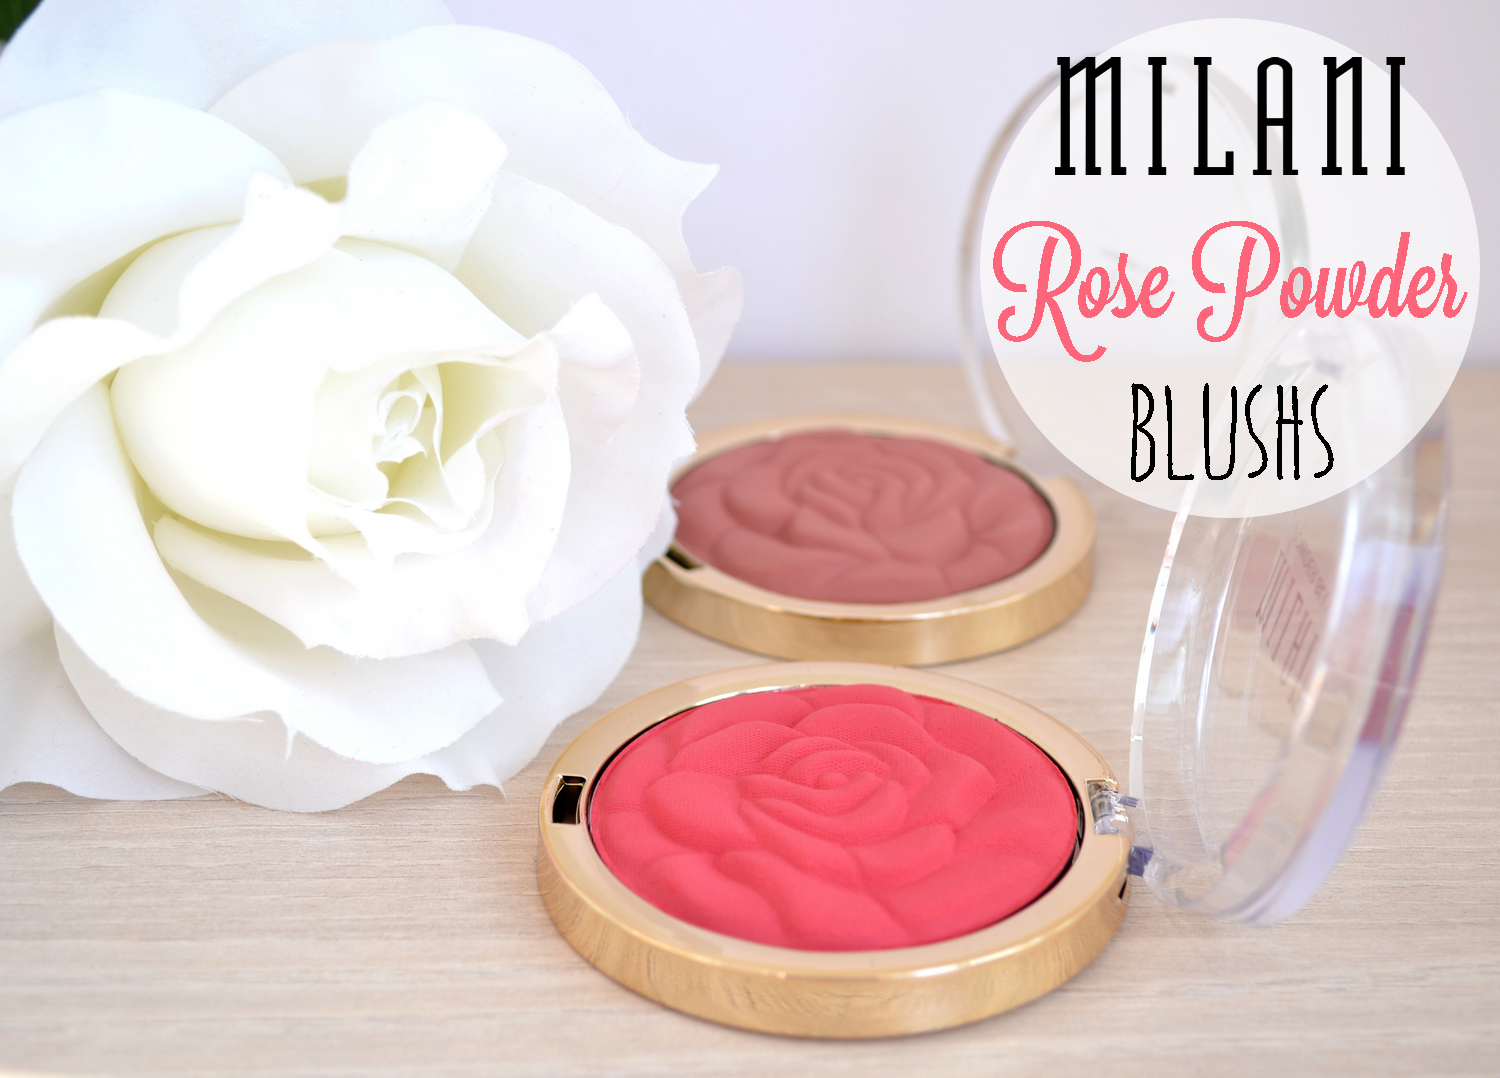 http://www.dreamingsmoothly.com/2015/04/milani-rose-powder-blush-review.html